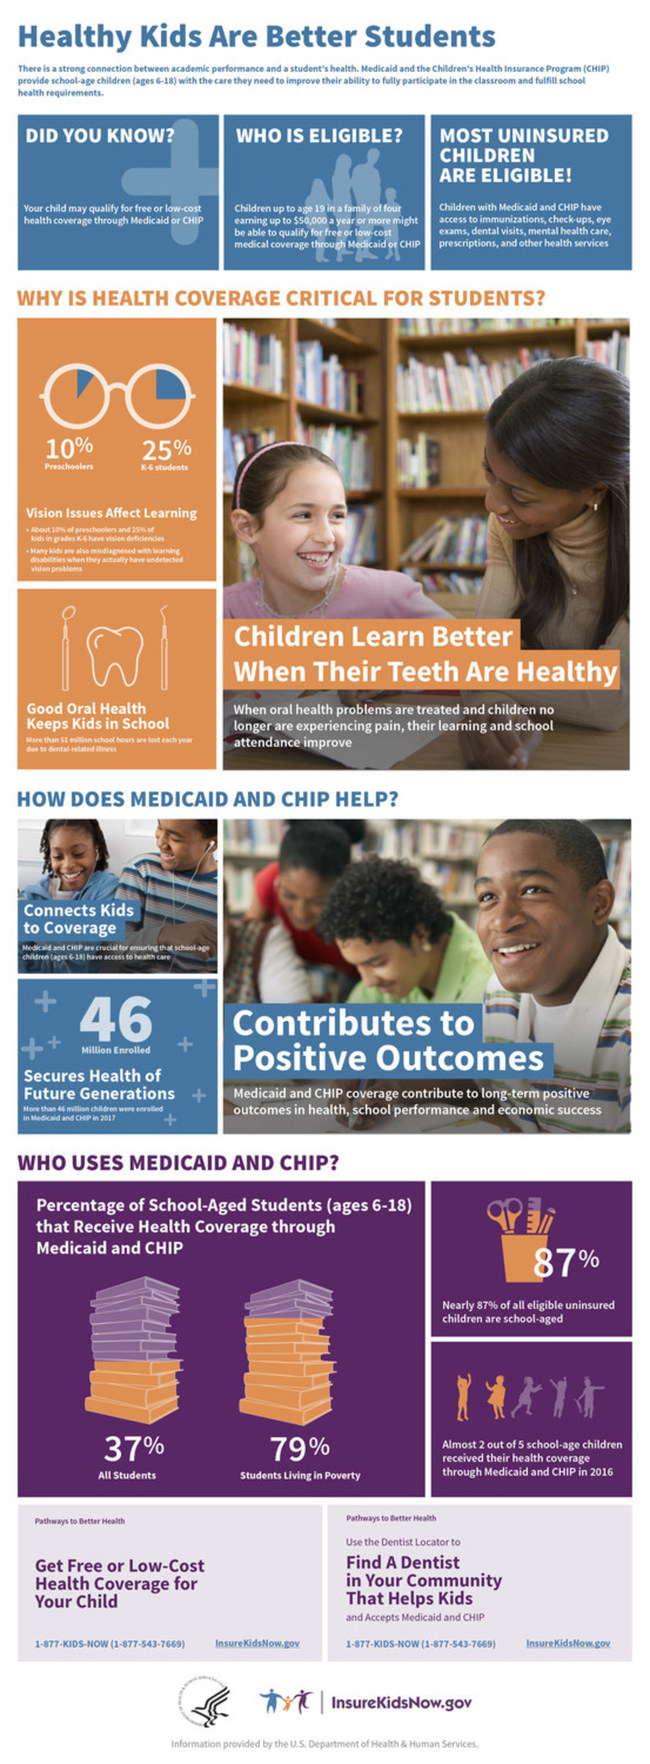 Photo Courtesy of Centers for Medicare & Medicaid Services